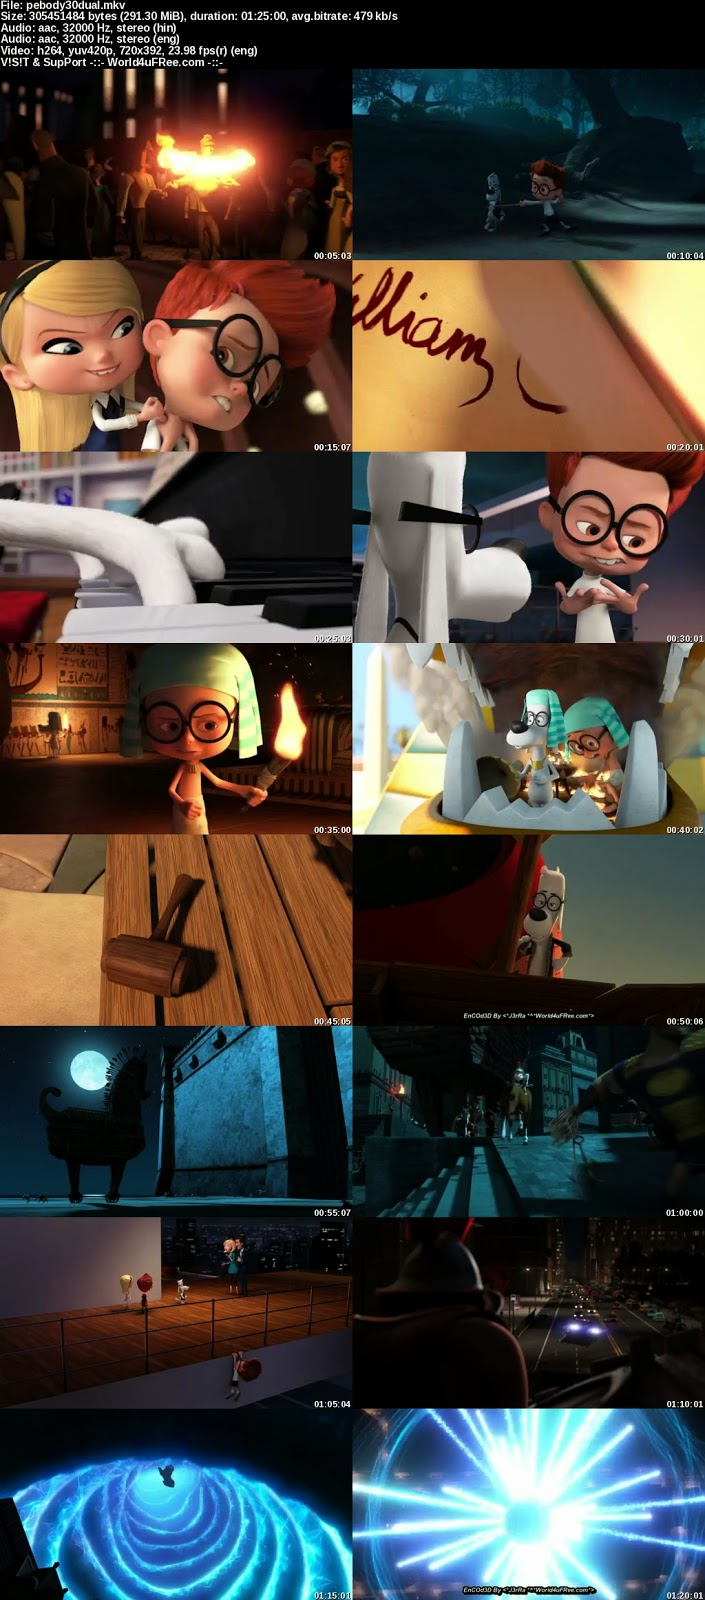 Mr peabody and sherman full movie download in hindi 300mb | Mr